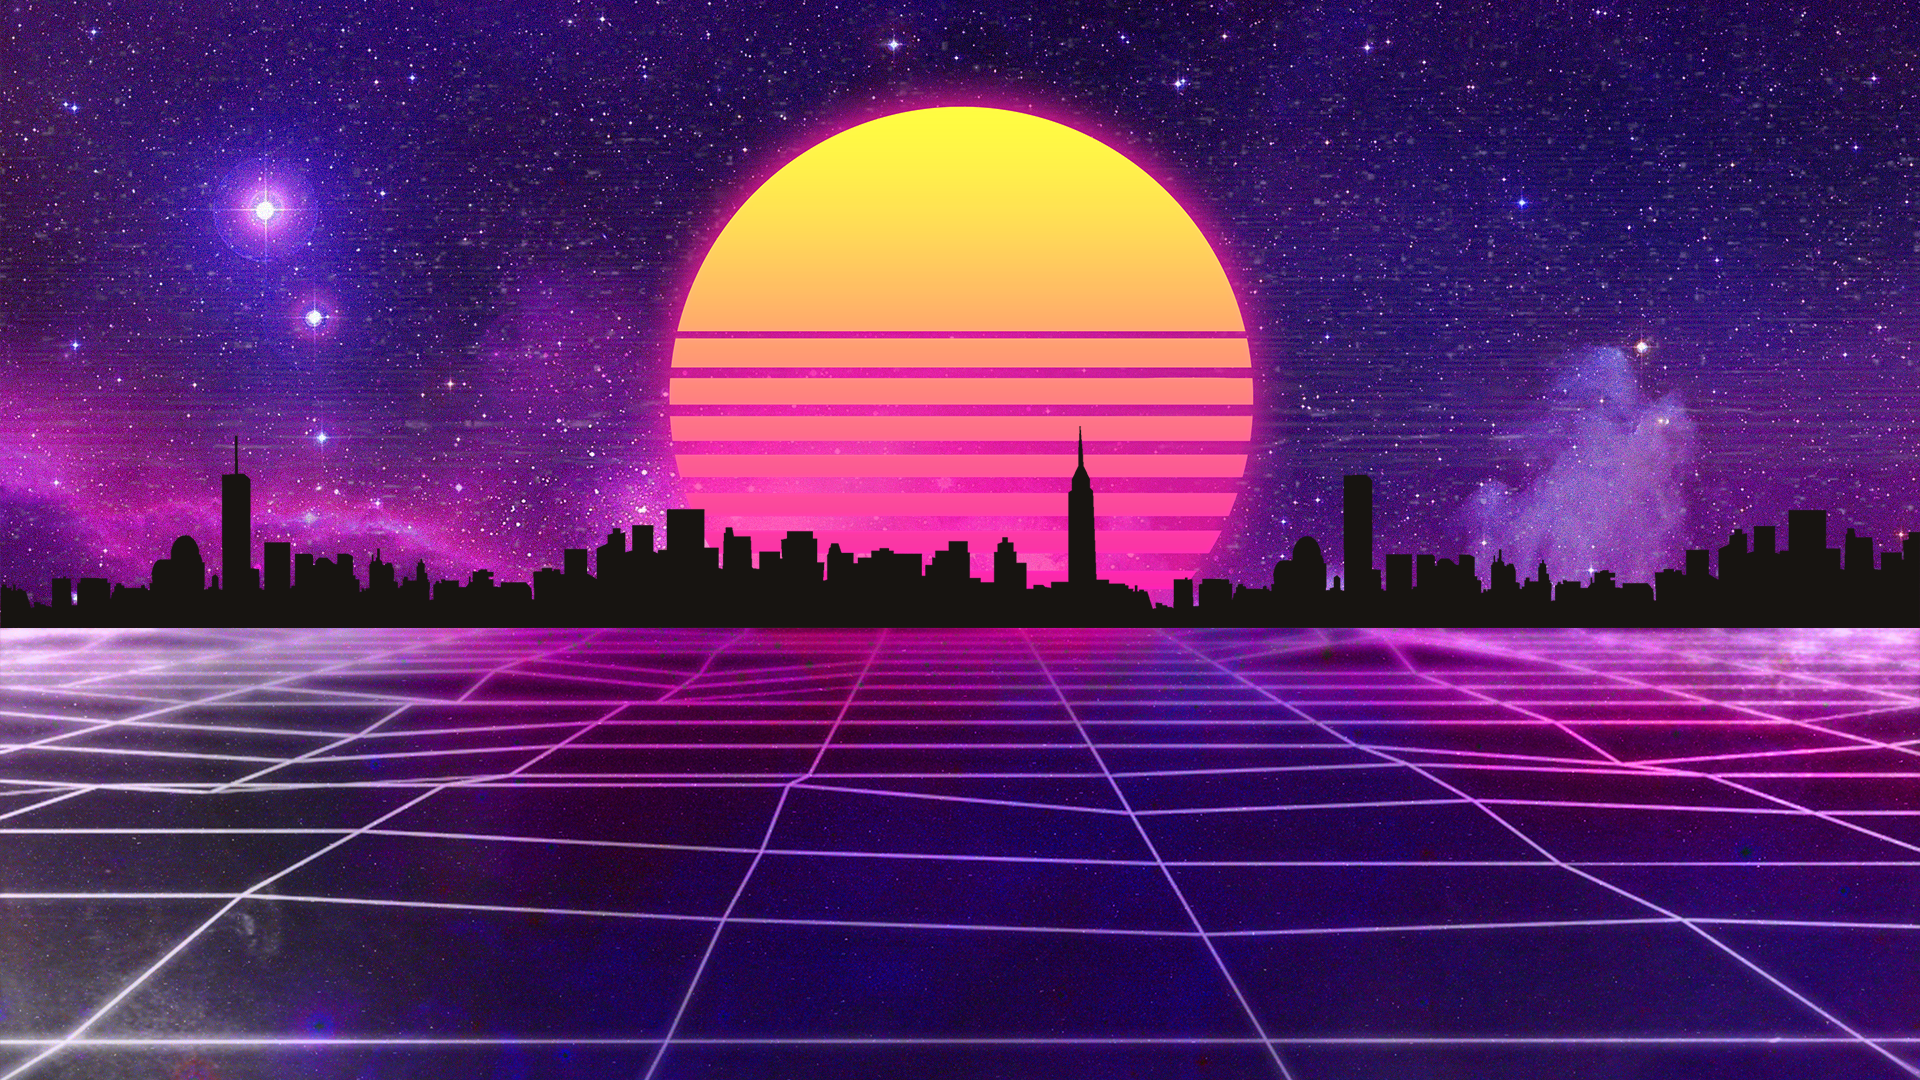 Retrowave wallpaper by halukaliev on deviantart - Space 80s wallpaper ...